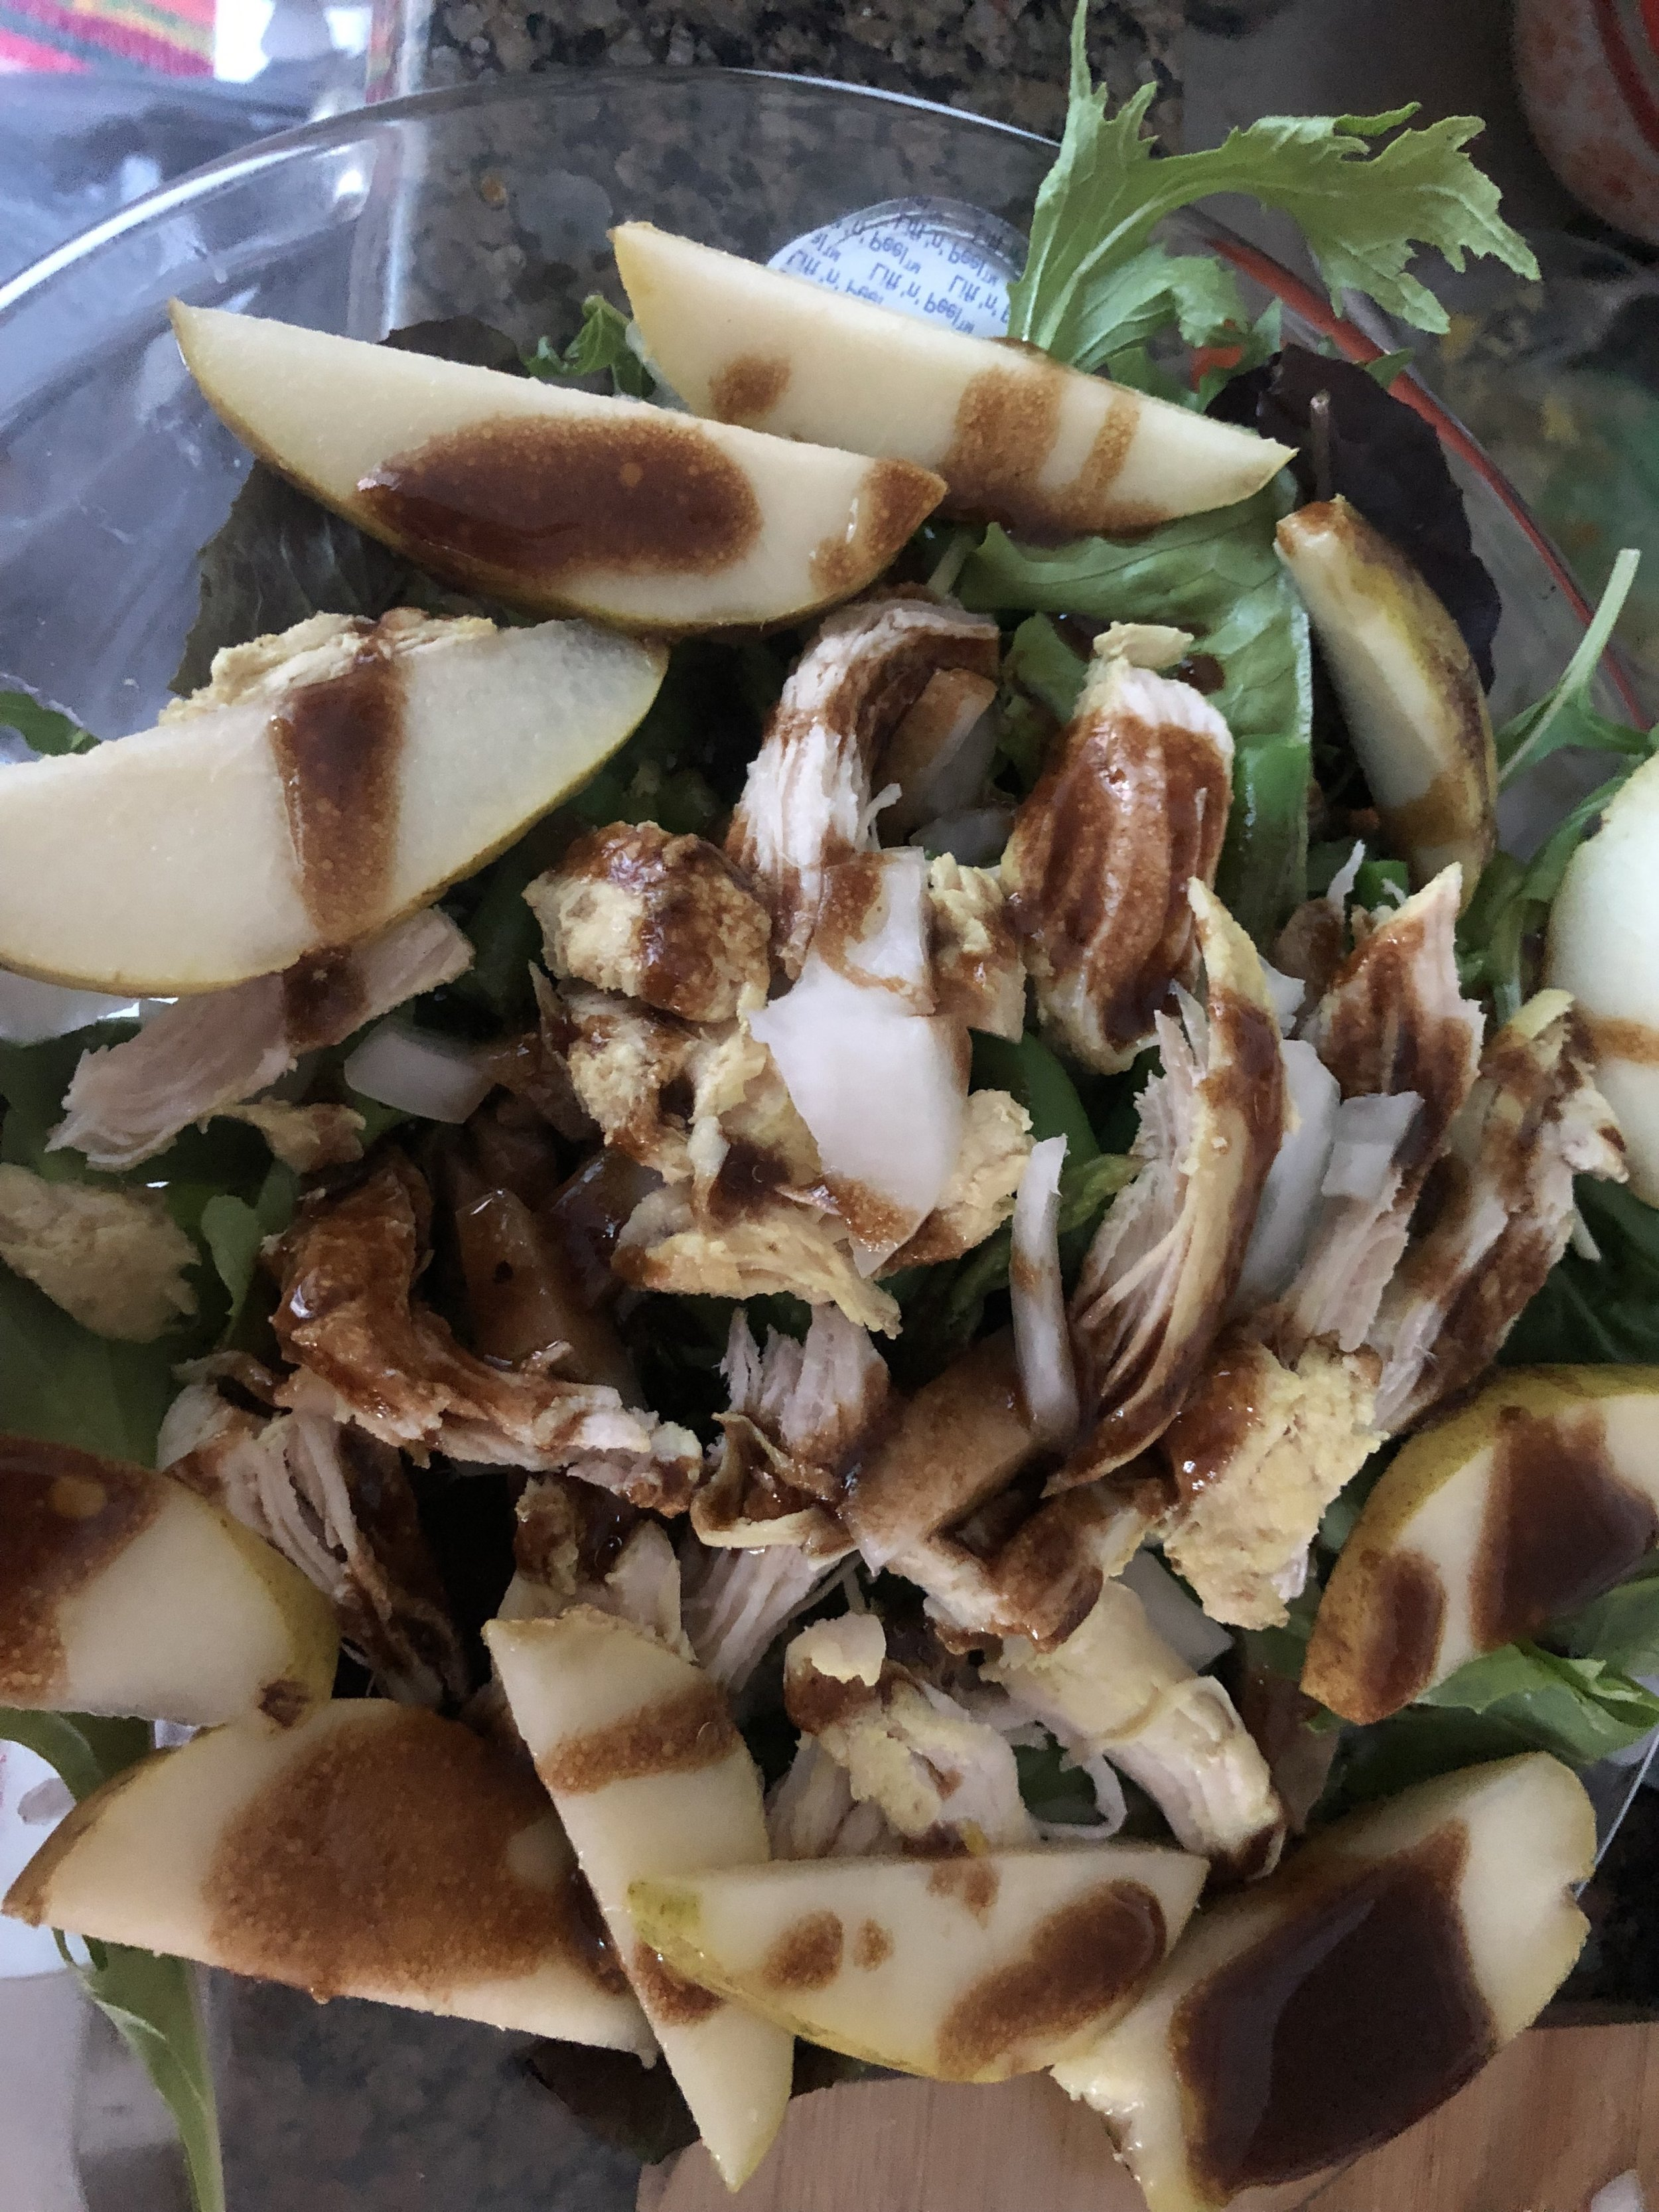 Ingredients  ripe pear  0.5 lb of asparagus  0.5 lb green beans  medium scallion  medium chicken breast  2 cups of spring greens    dressing  0.5 cup of balsamic vinegar  0.5 cup dijon mustard  0.25 cup of soy sauce  0.25- 0.5 cup of olive oil  ground pepper, to taste